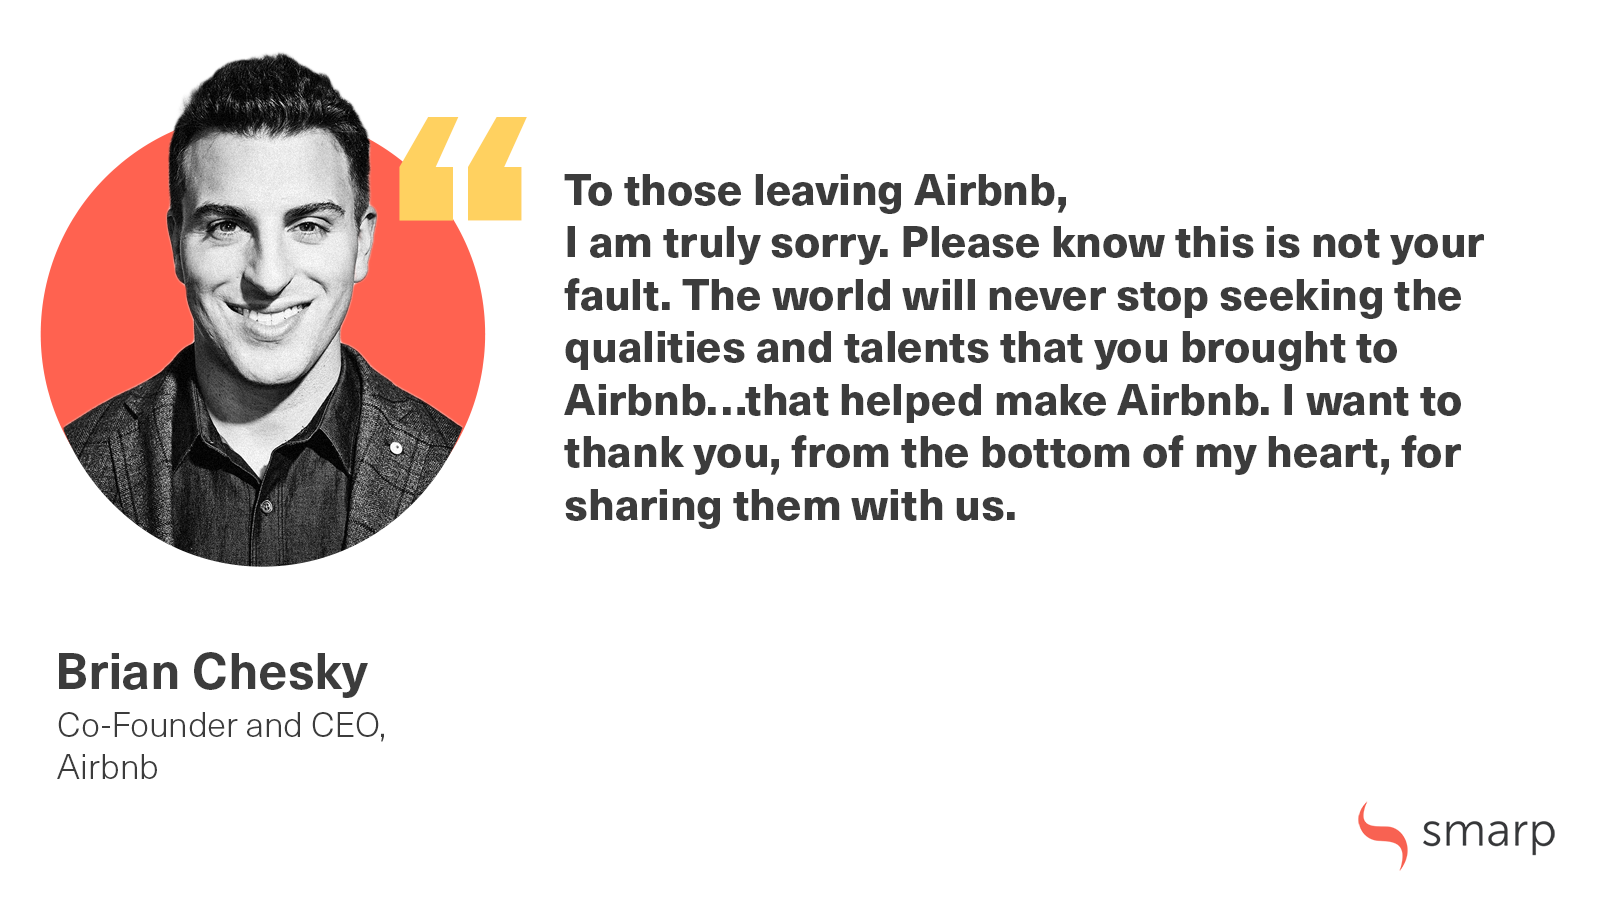 Brian Chesky airbnb smarp quote w-1